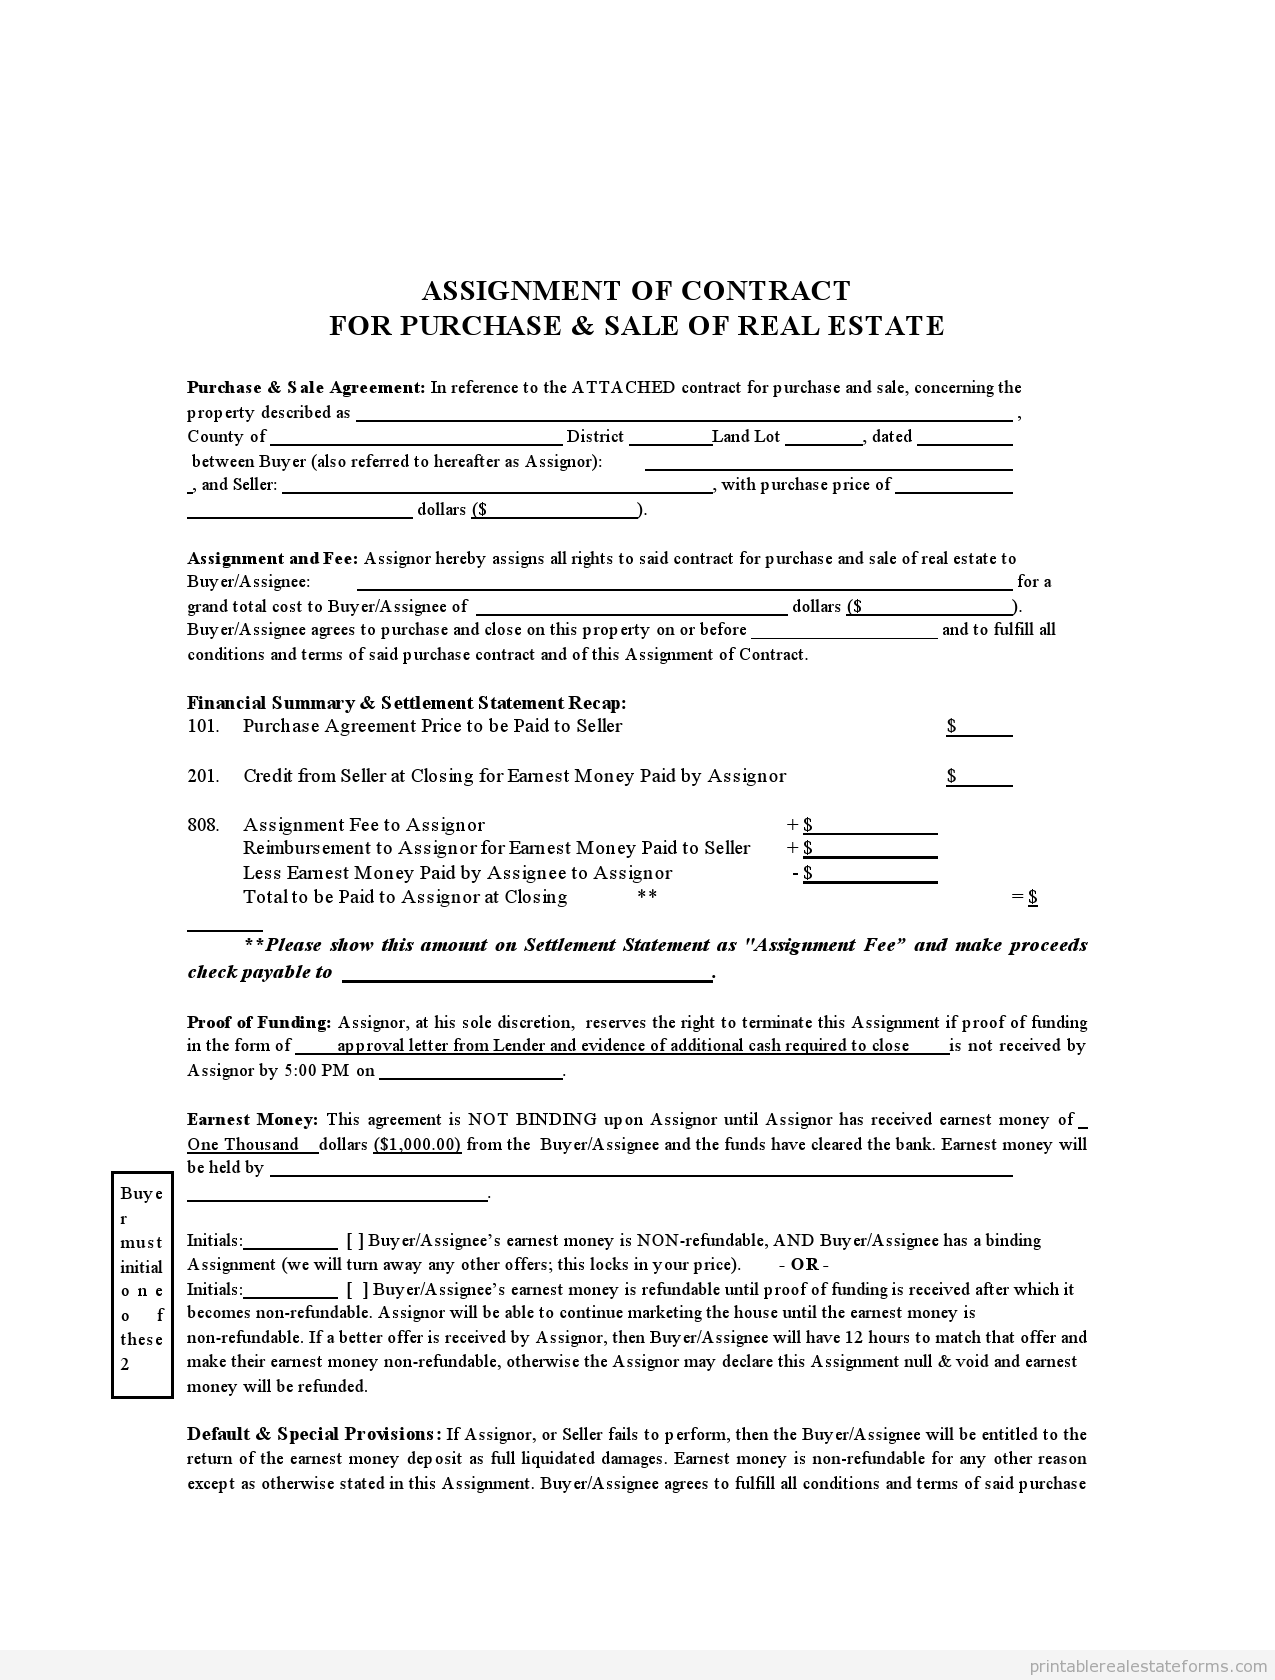 Free Assignment Of Contract Form Printable Real Estate Forms Real Estate Forms Real Estate Contract Wholesale Real Estate